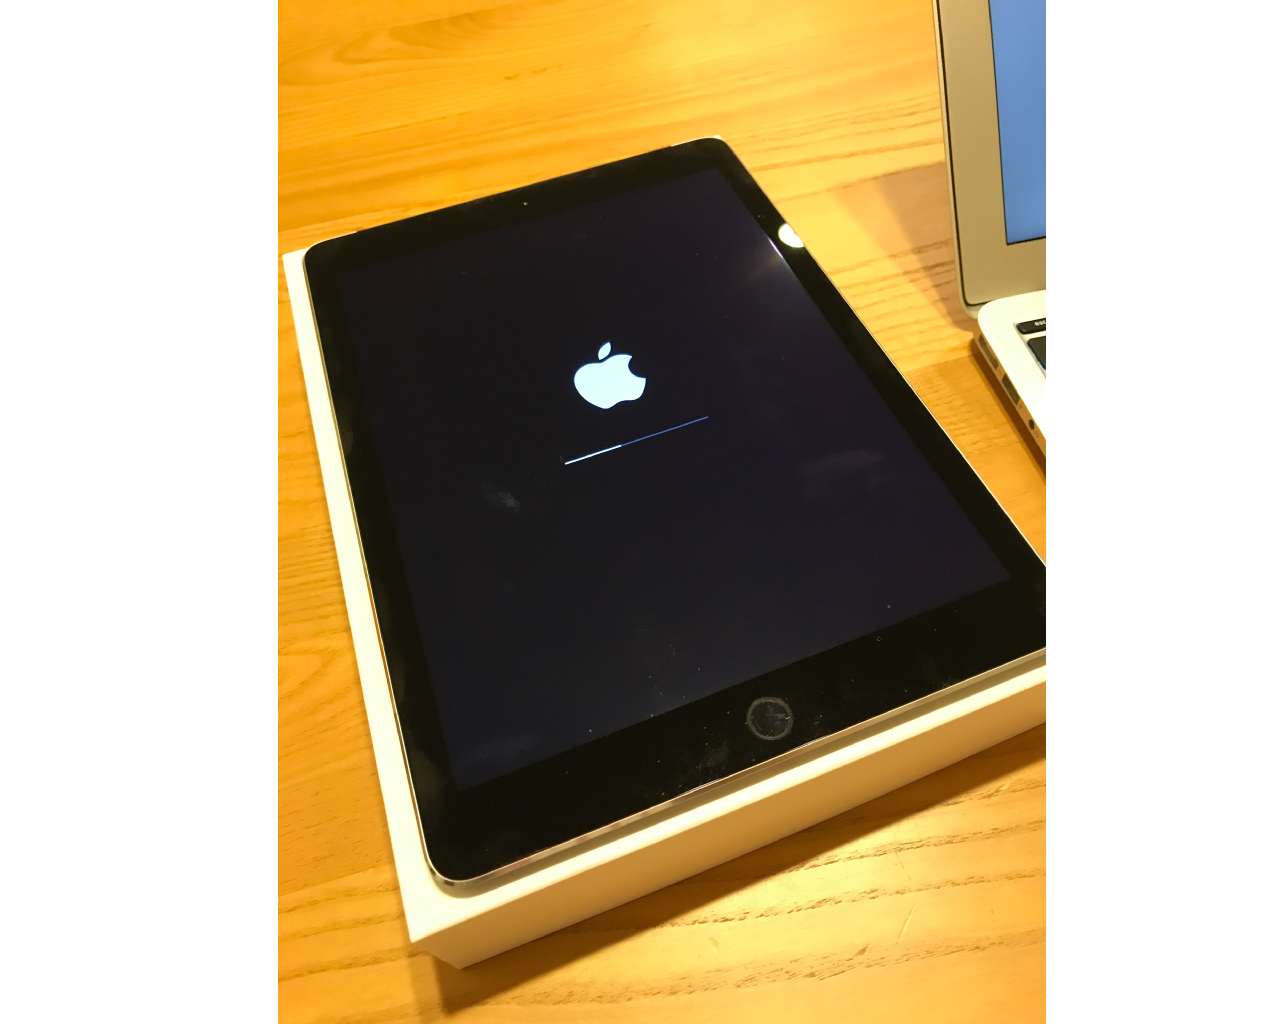 iphone-ipad-operations-to-be-performed-before-selling-10